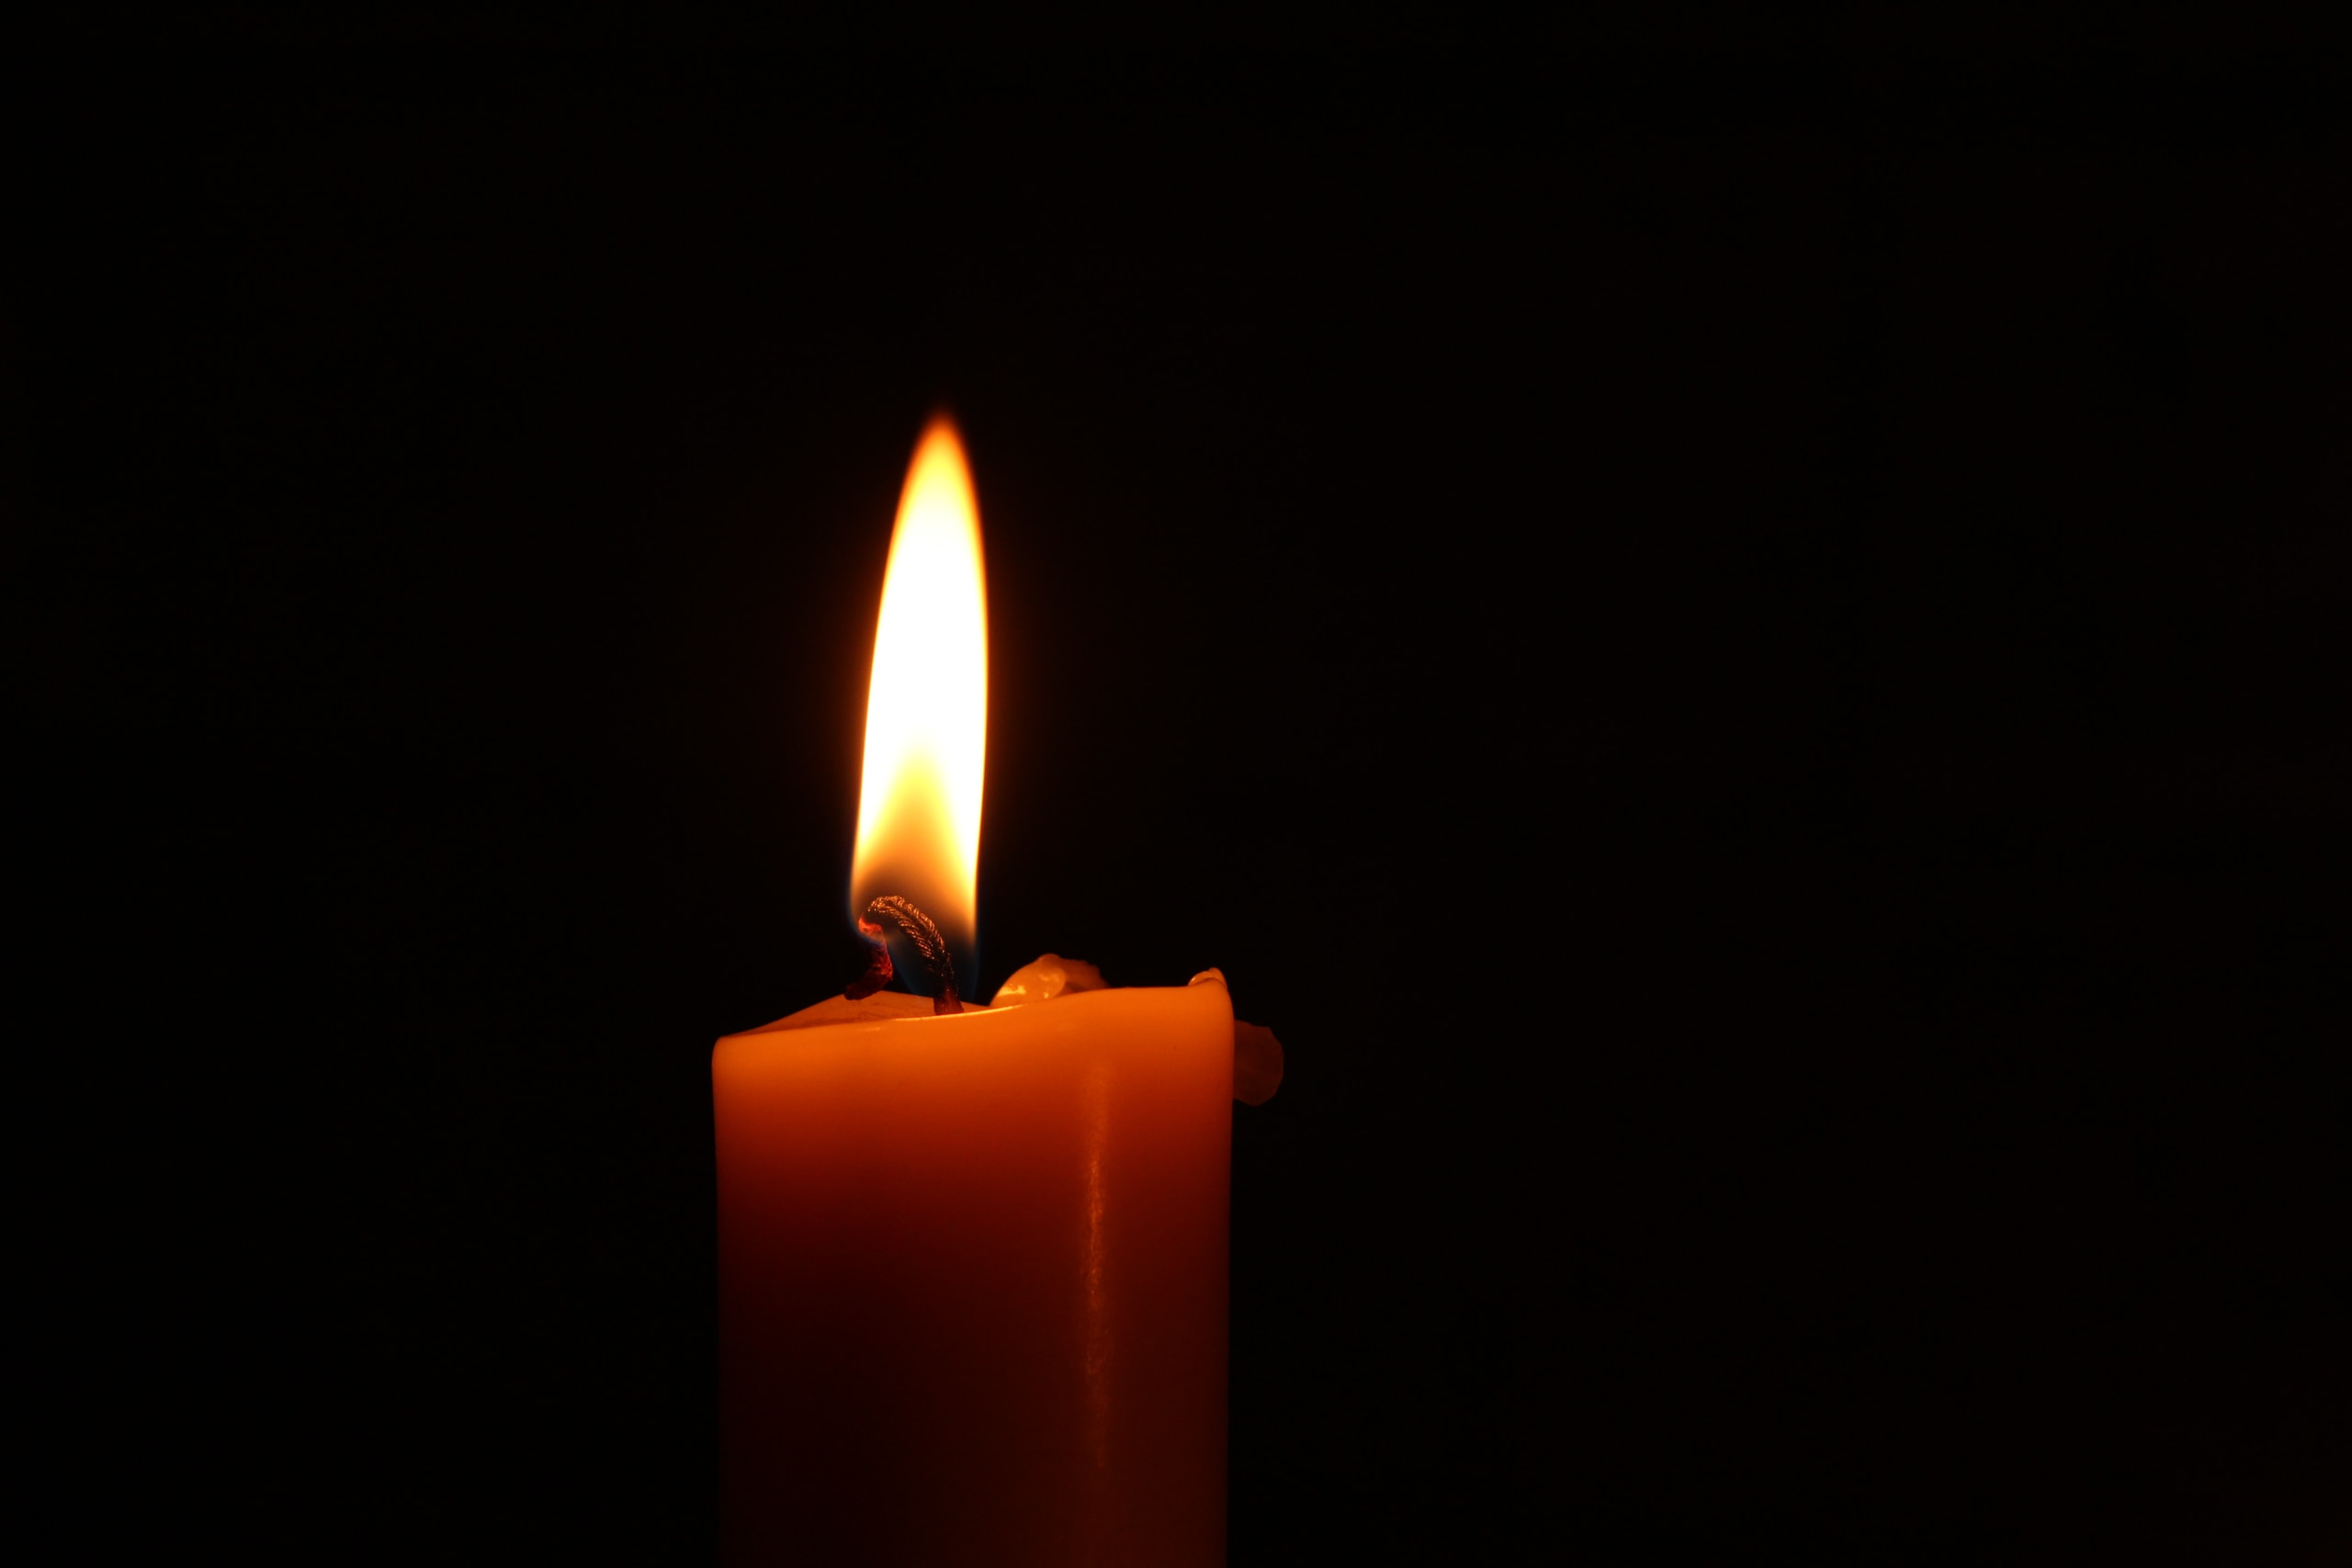 close-up of lighted candle